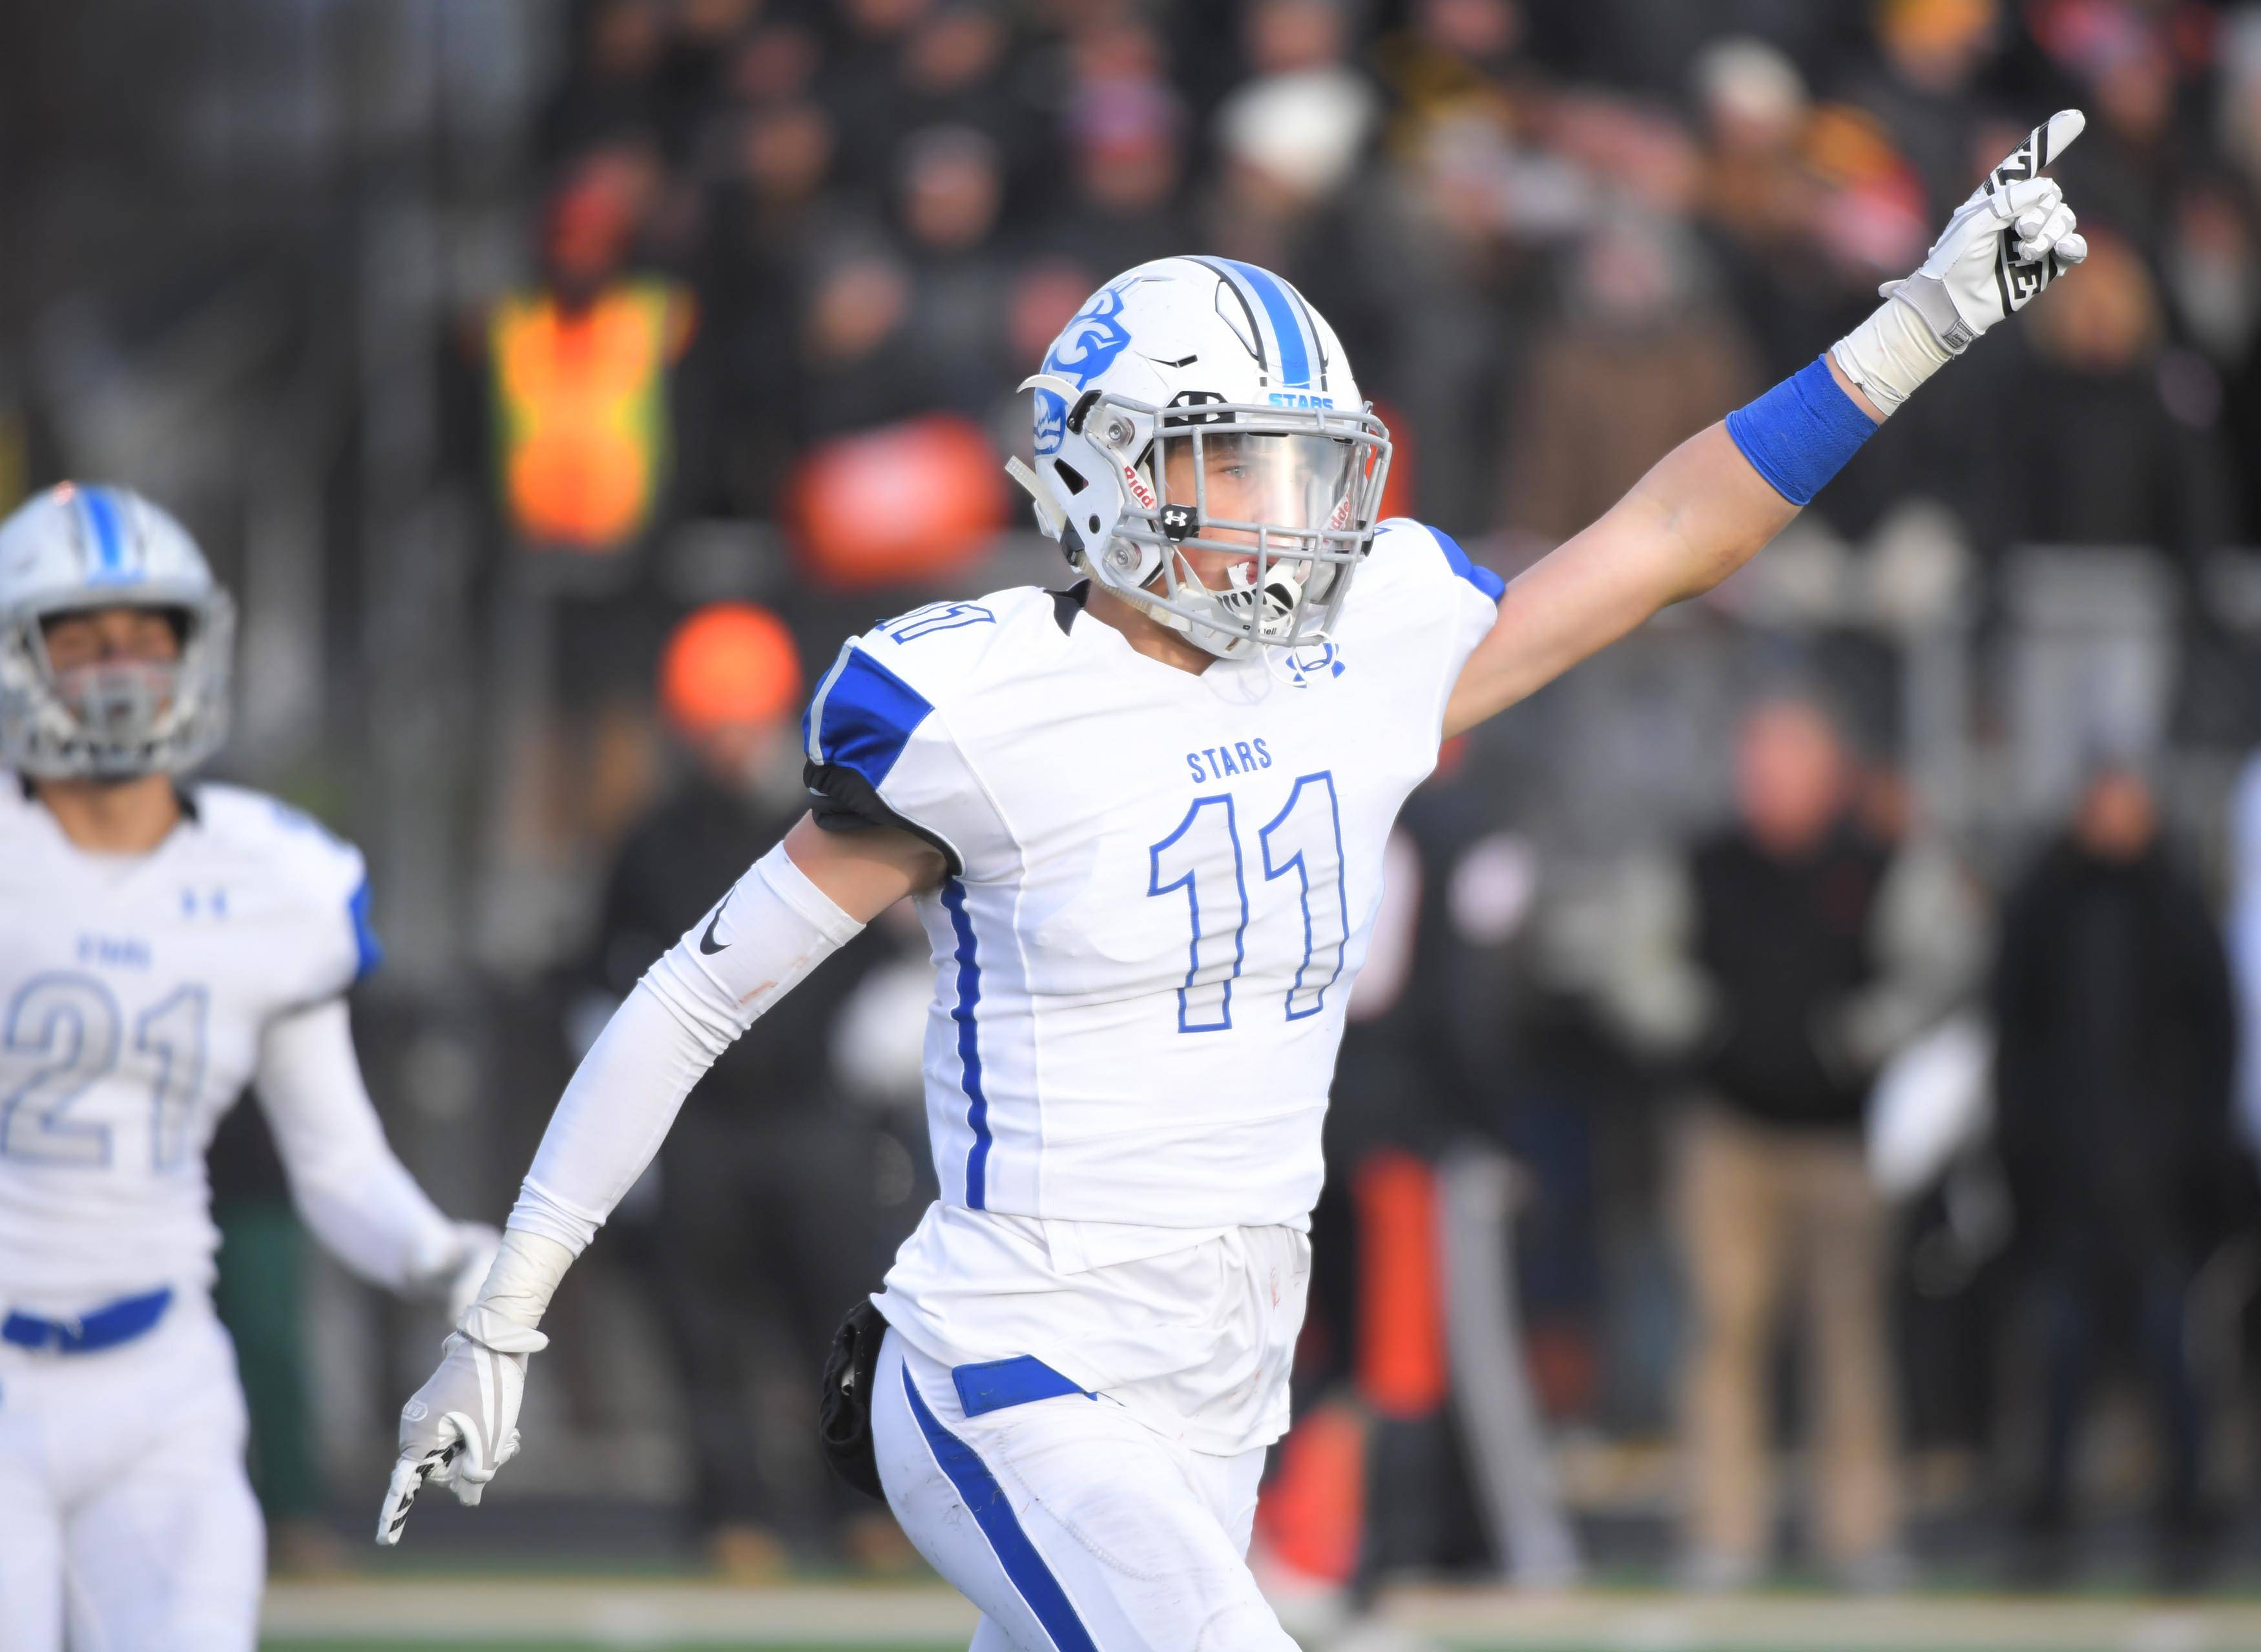 St. Charles North's Egon Hein reacts after intercepting a pass late in the game to preserve a win against Wheaton Warrenville South Saturday in a quarterfinal playoff football game in Wheaton.